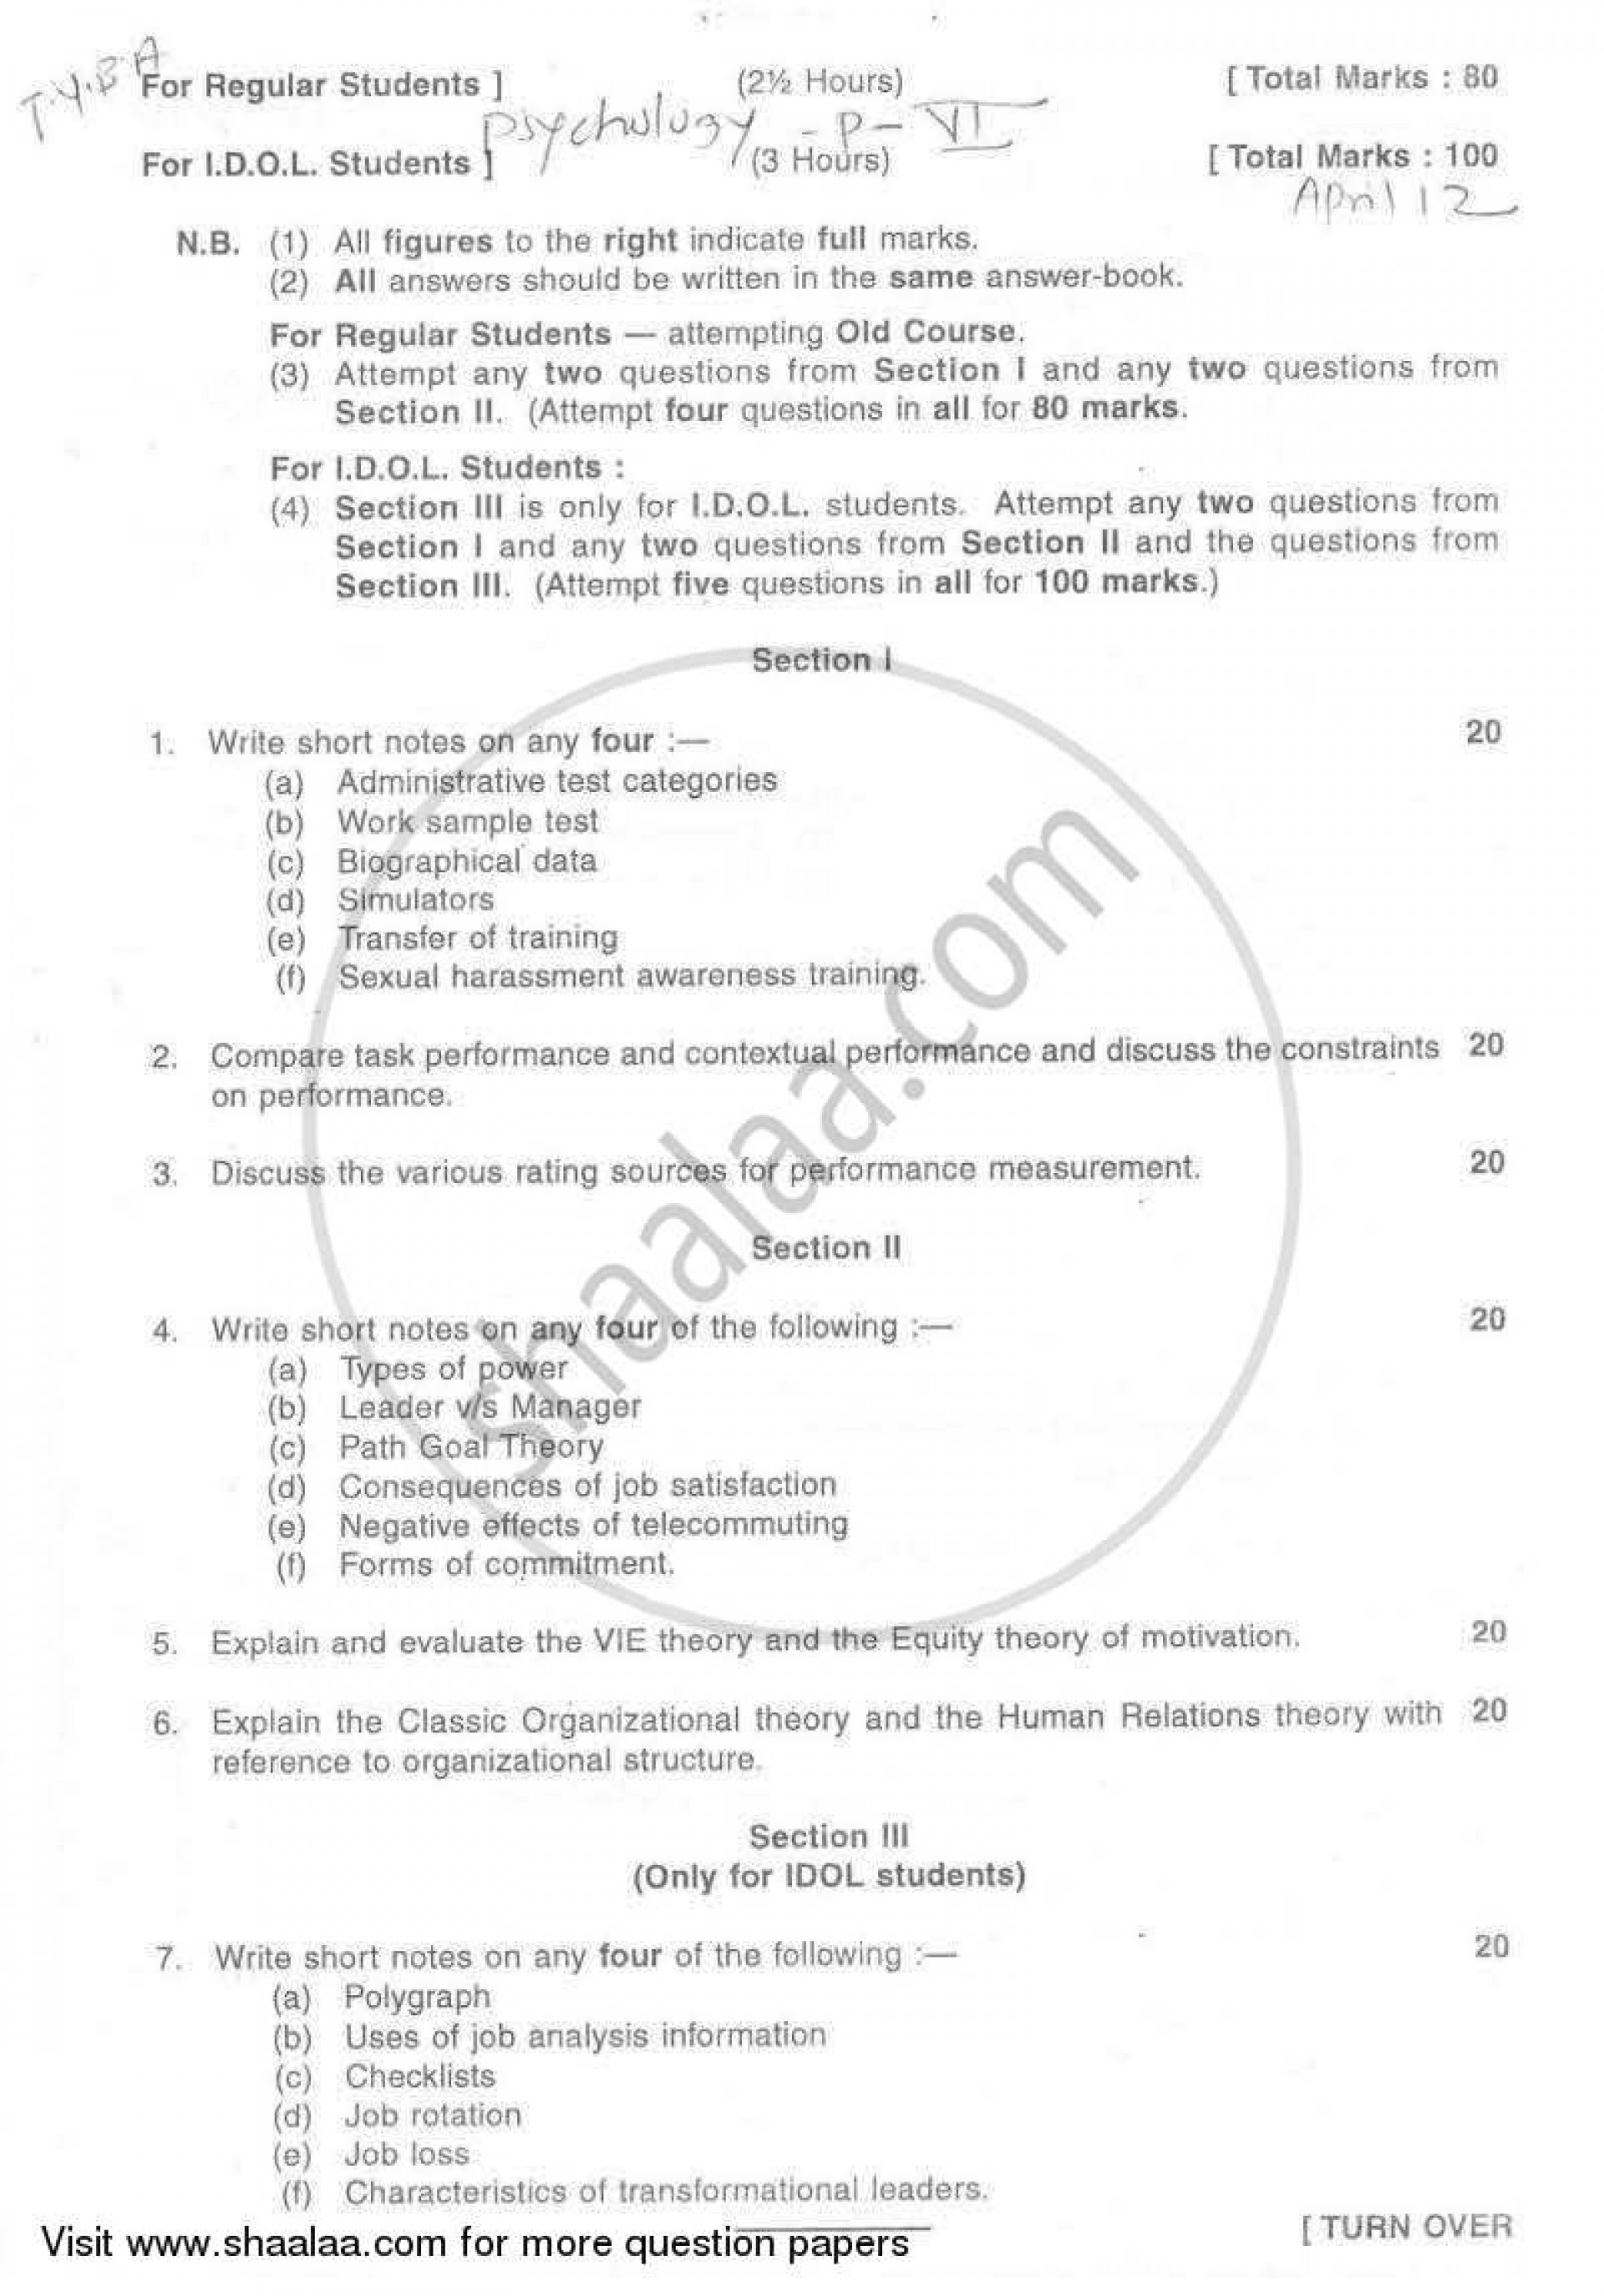 017 Psychologyearch Paper On Dreams University Of Mumbai Bachelor Industrial Organizational T Y Yearly Pattern Semester Tyba 2011 29a03925dfc524f2aa4cb10e4d3da996a Singular Psychology Research Articles News 1920